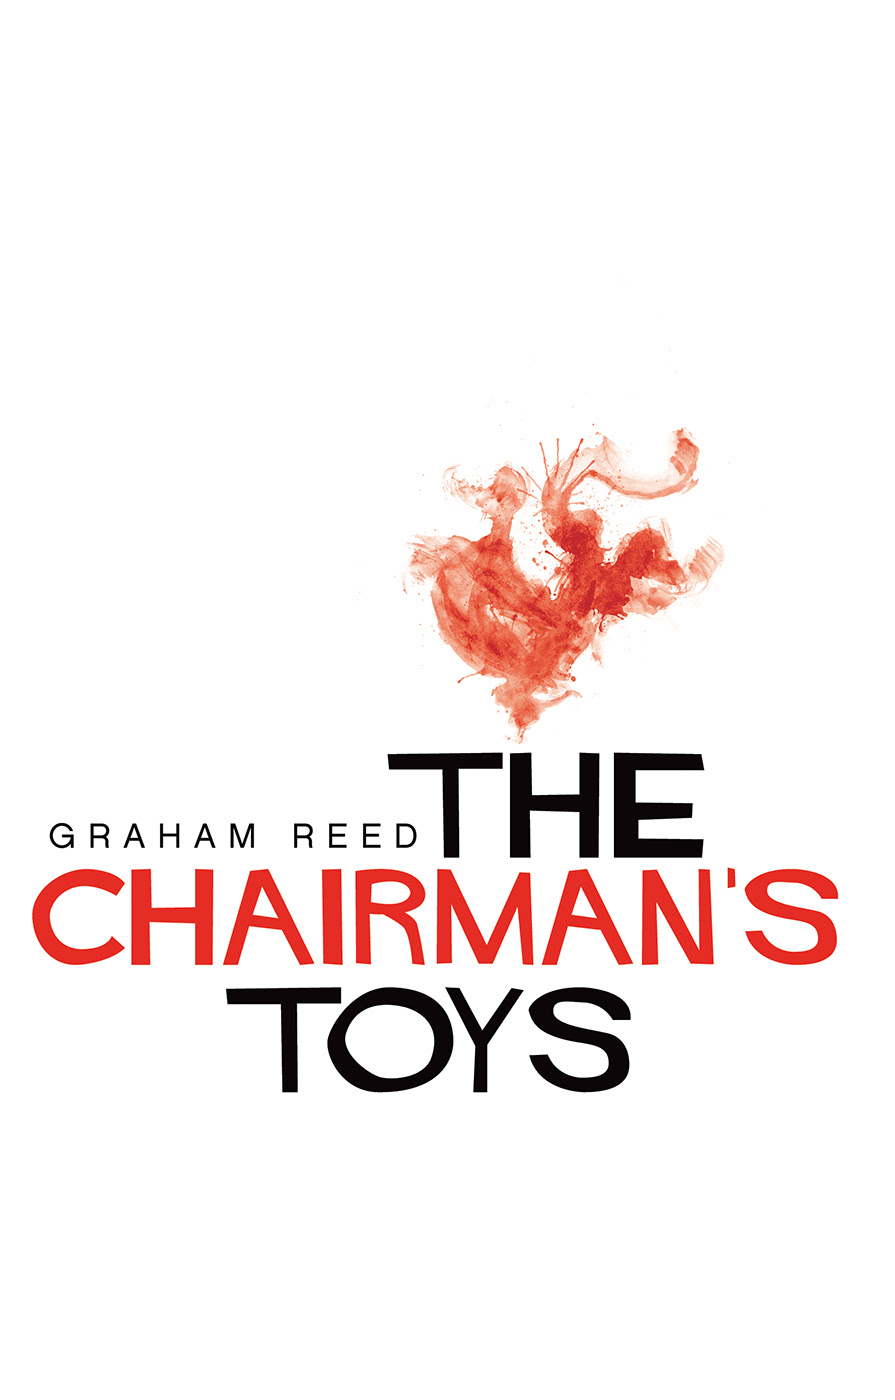 The Chairman's Toys by Graham Reed